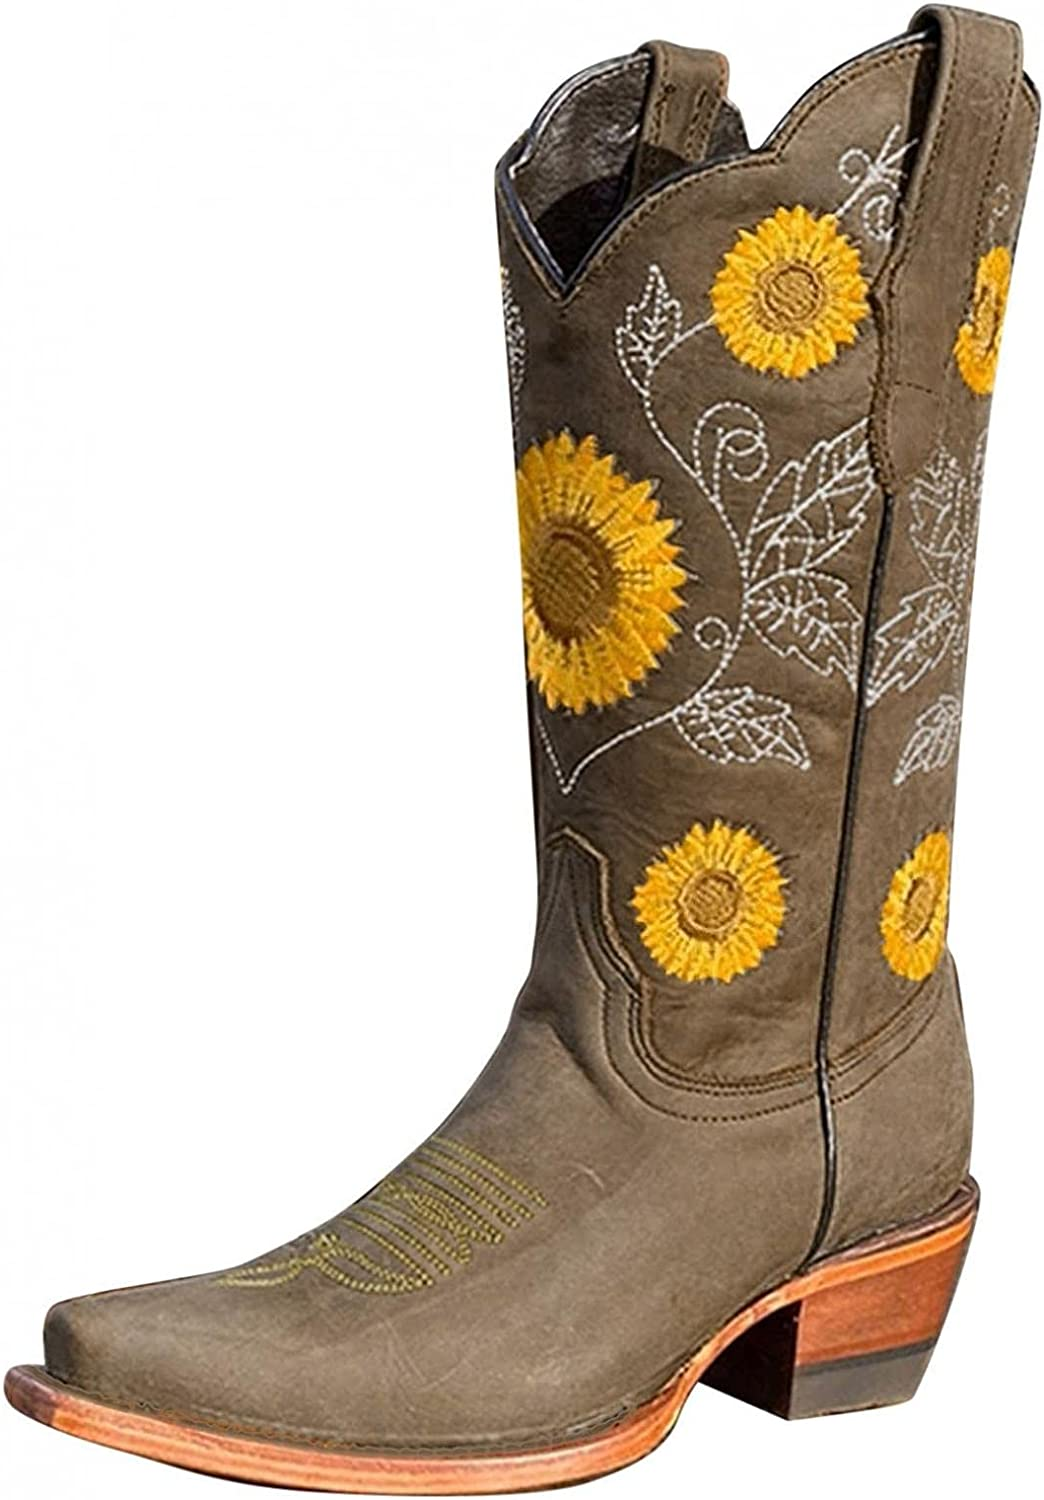 AODONG Western Boots for Women Sunflowers Embroidery Cowboy Boots Mid Calf Chunky Heel Retro Square Toe Platform Boots